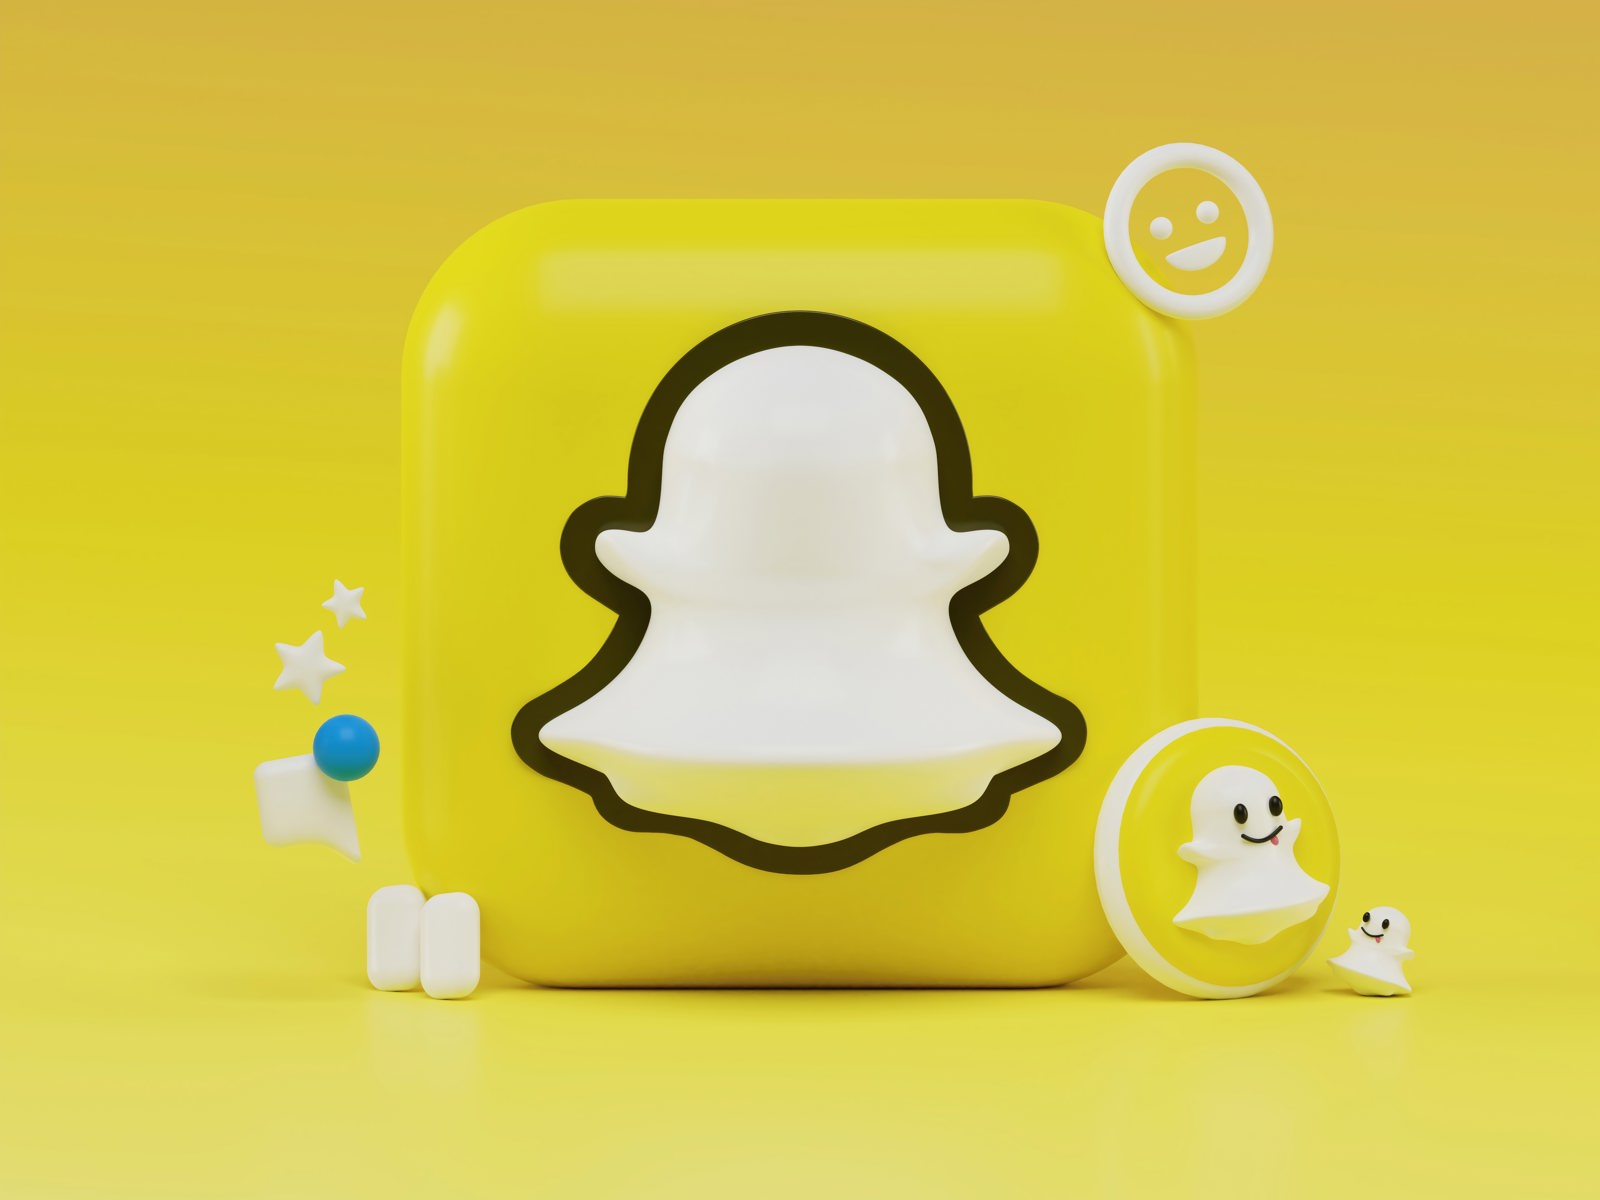 SnapChat SNAP stock news and analysis